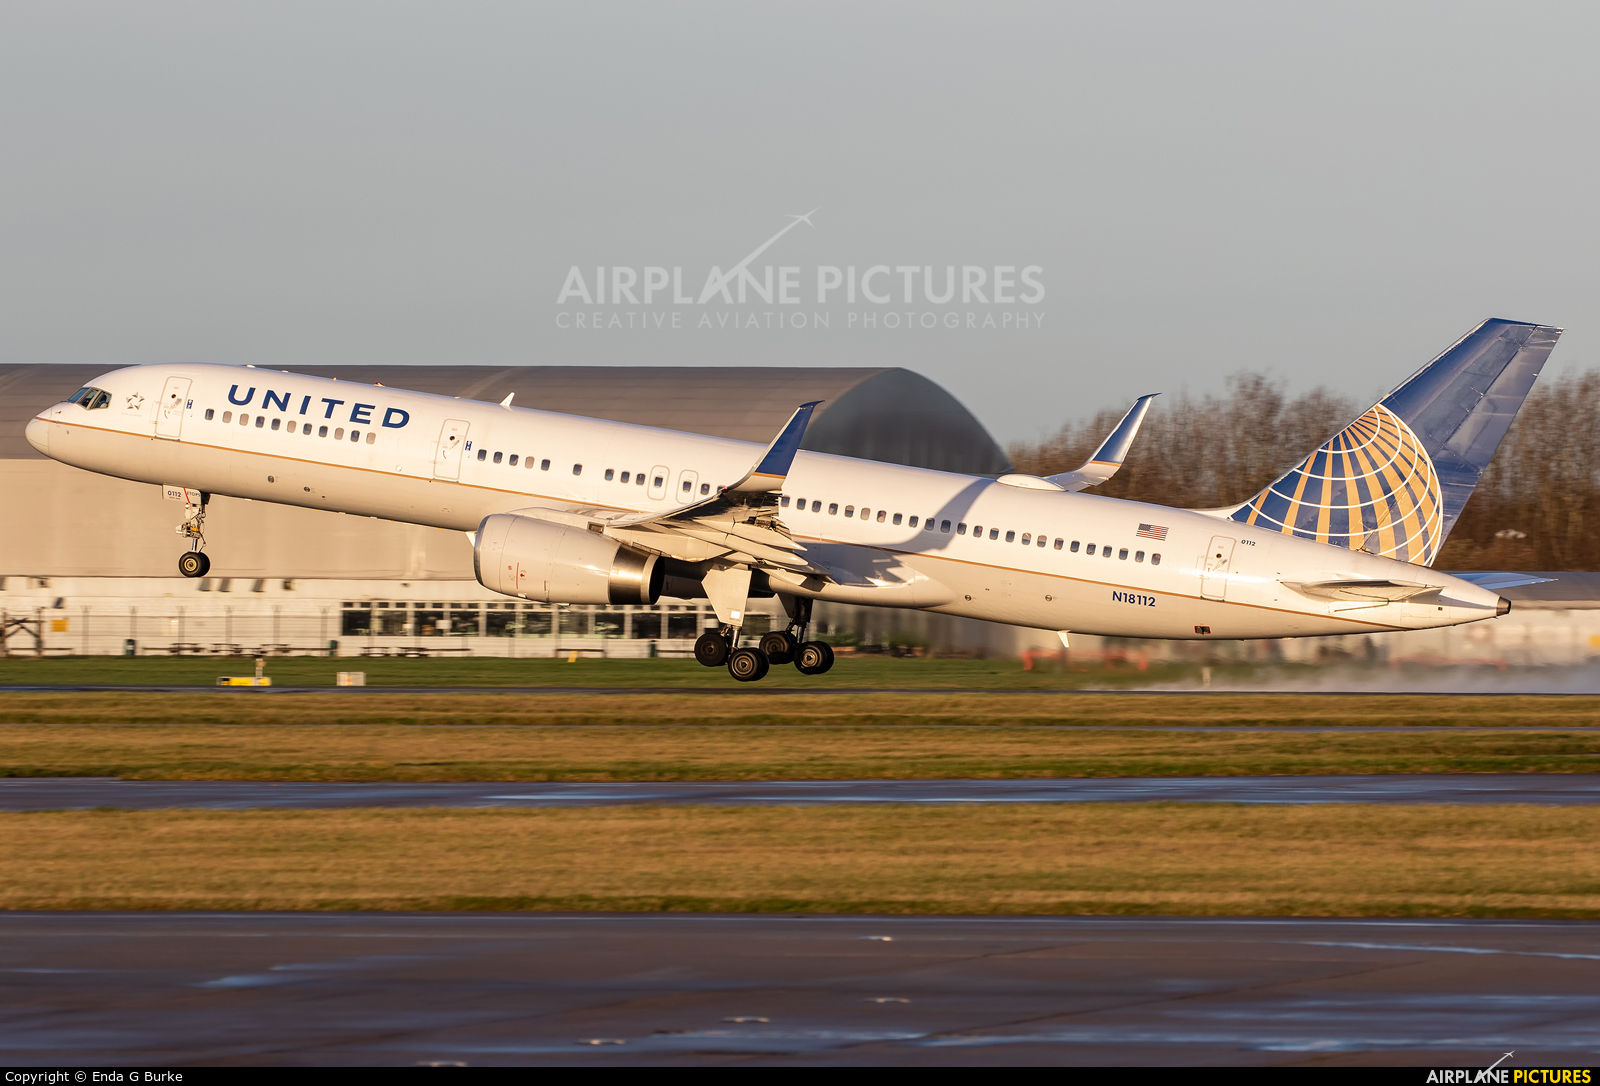 United Airlines N18112 aircraft at Manchester